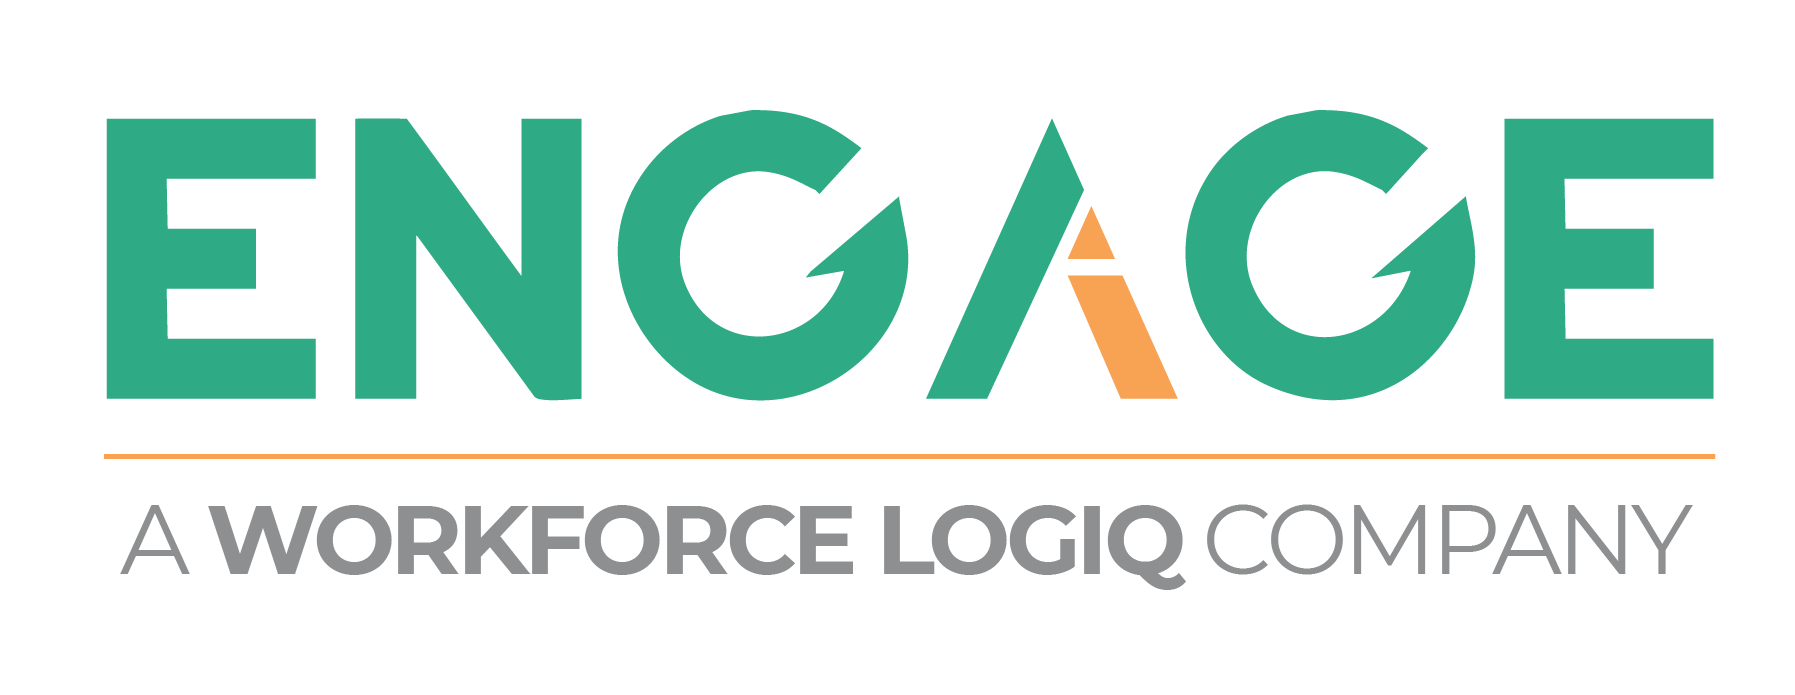 engage_logo_transparent-01-01